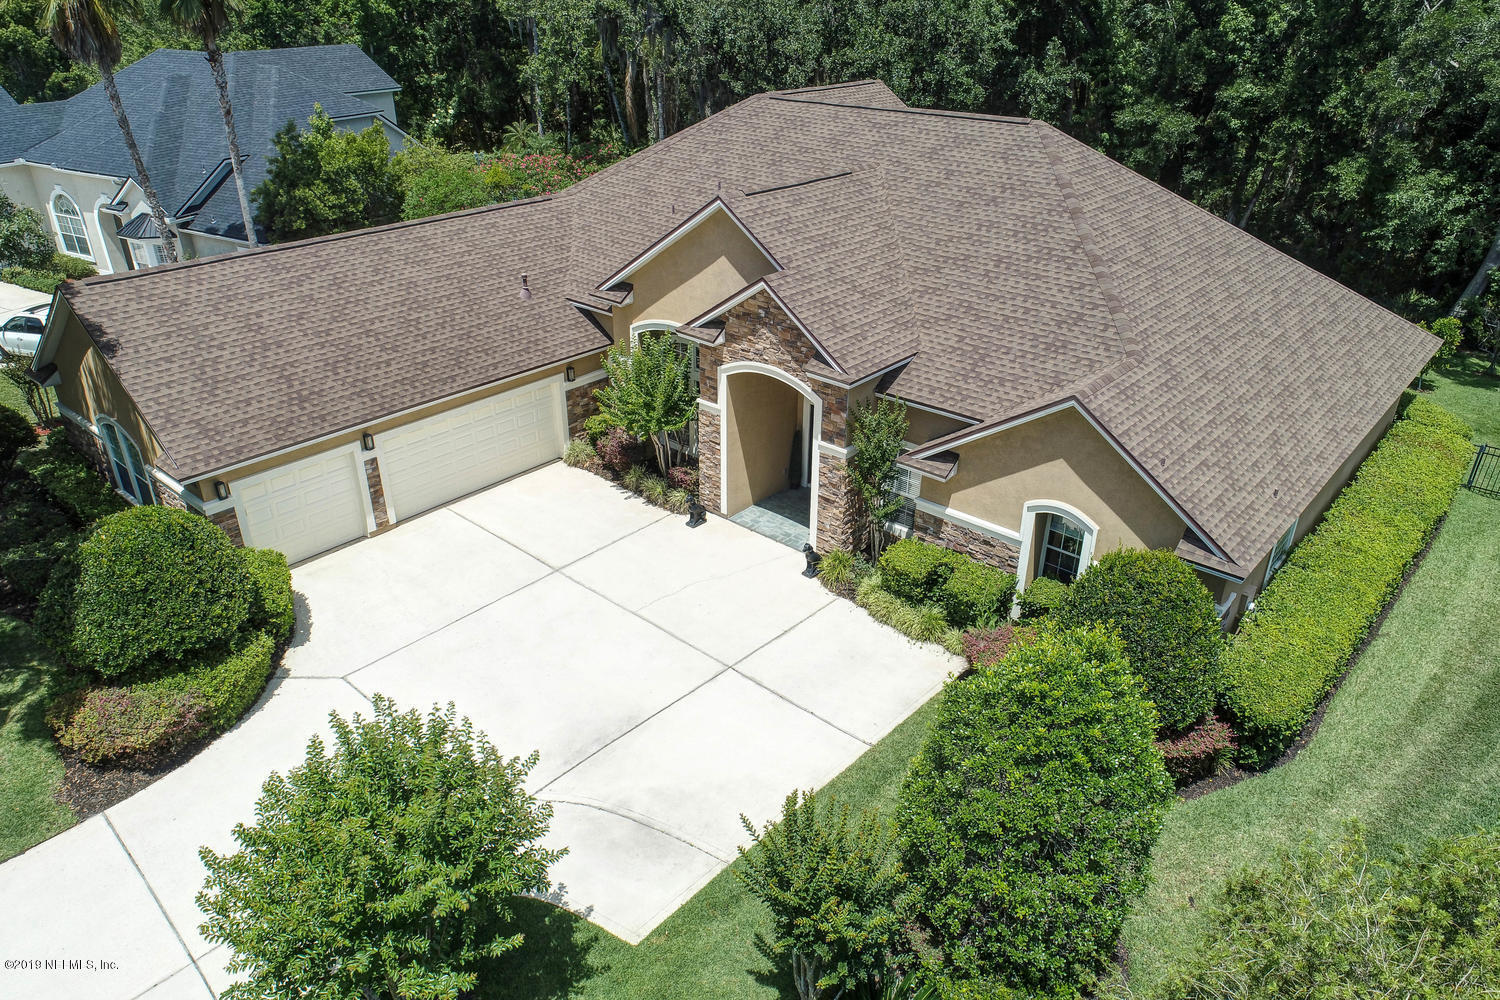 10378 CYPRESS LAKES, JACKSONVILLE, FLORIDA 32256, 5 Bedrooms Bedrooms, ,4 BathroomsBathrooms,Residential - single family,For sale,CYPRESS LAKES,994896